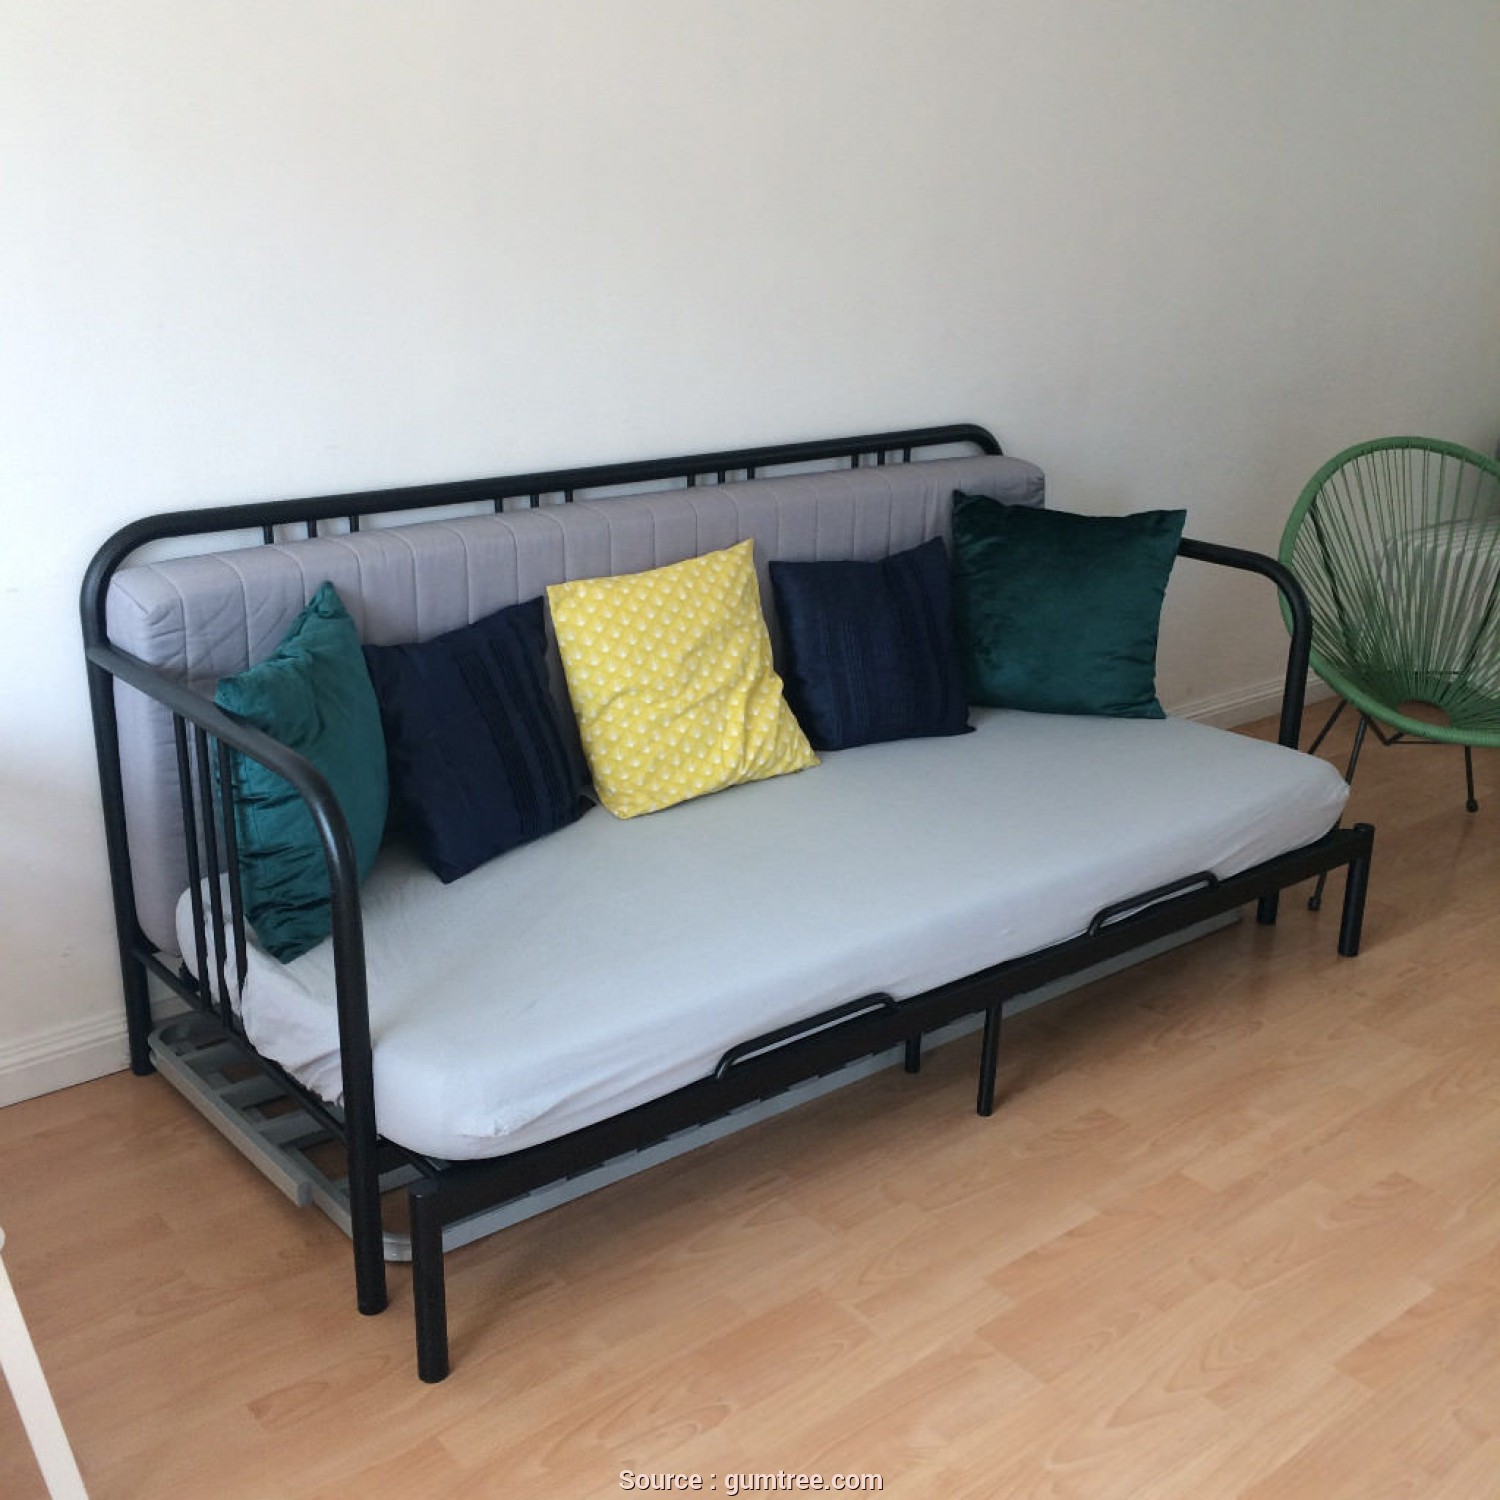 Ikea Futon Vw T5, Minimalista IKEA Fyresdal Sofa Bed/Day Bed. Free Mattresses., In Elgin, Moray